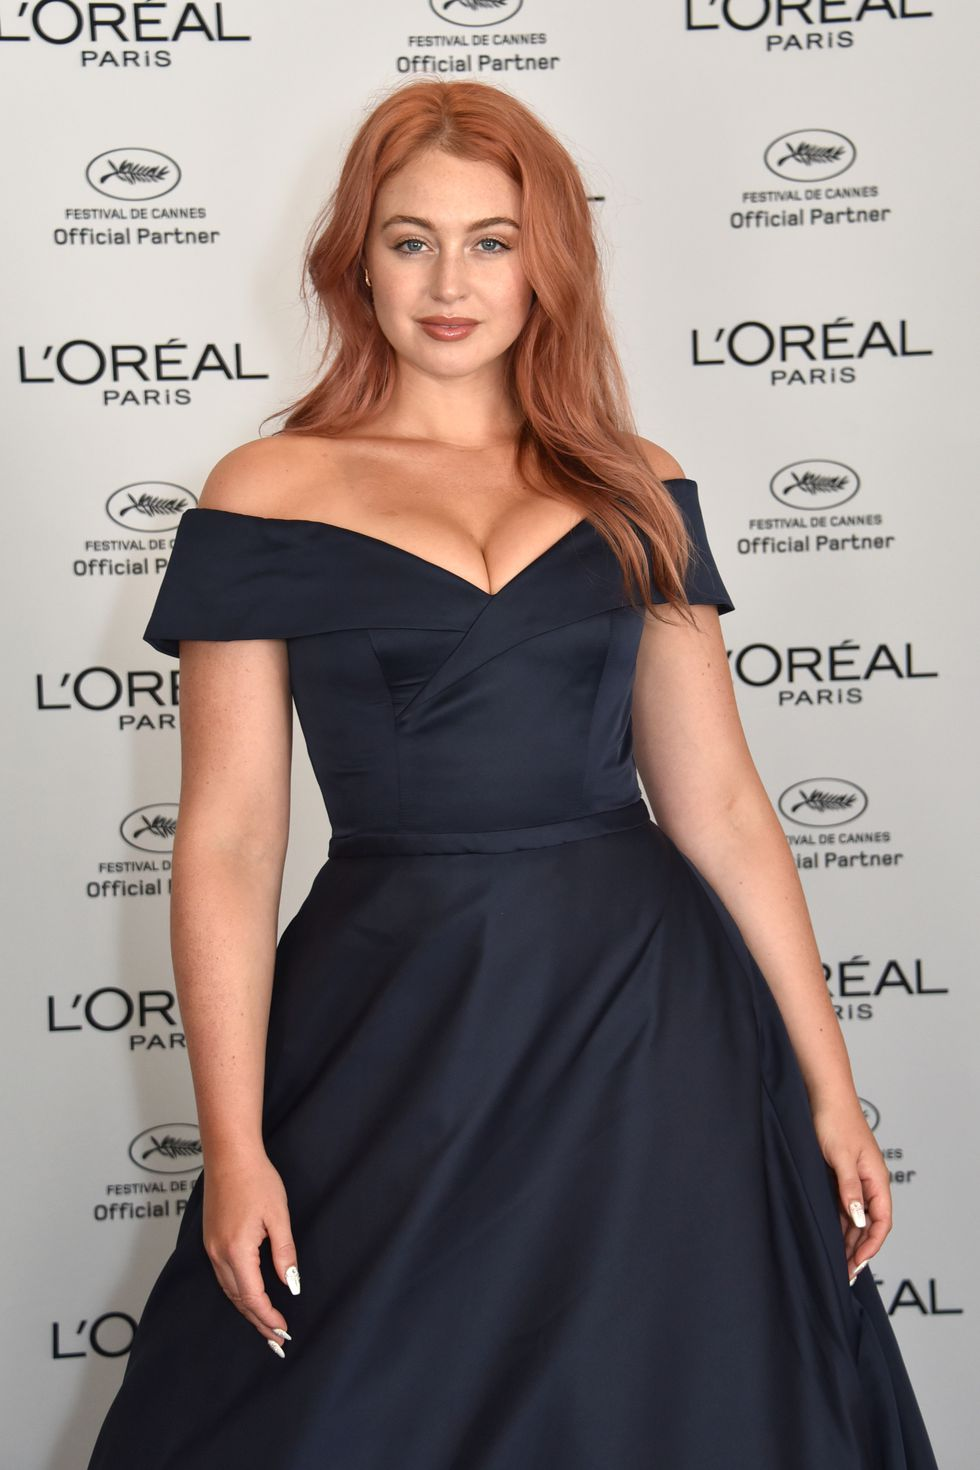 """TREND: Rose Gold Hair    (With a Twist)   Fall into a more updated version of the ever-popular rose gold trend. We've seen rose gold everywhere. Iskra Lawrence's major hair change earlier this year is a """"darker, more natural version"""" of the tone."""